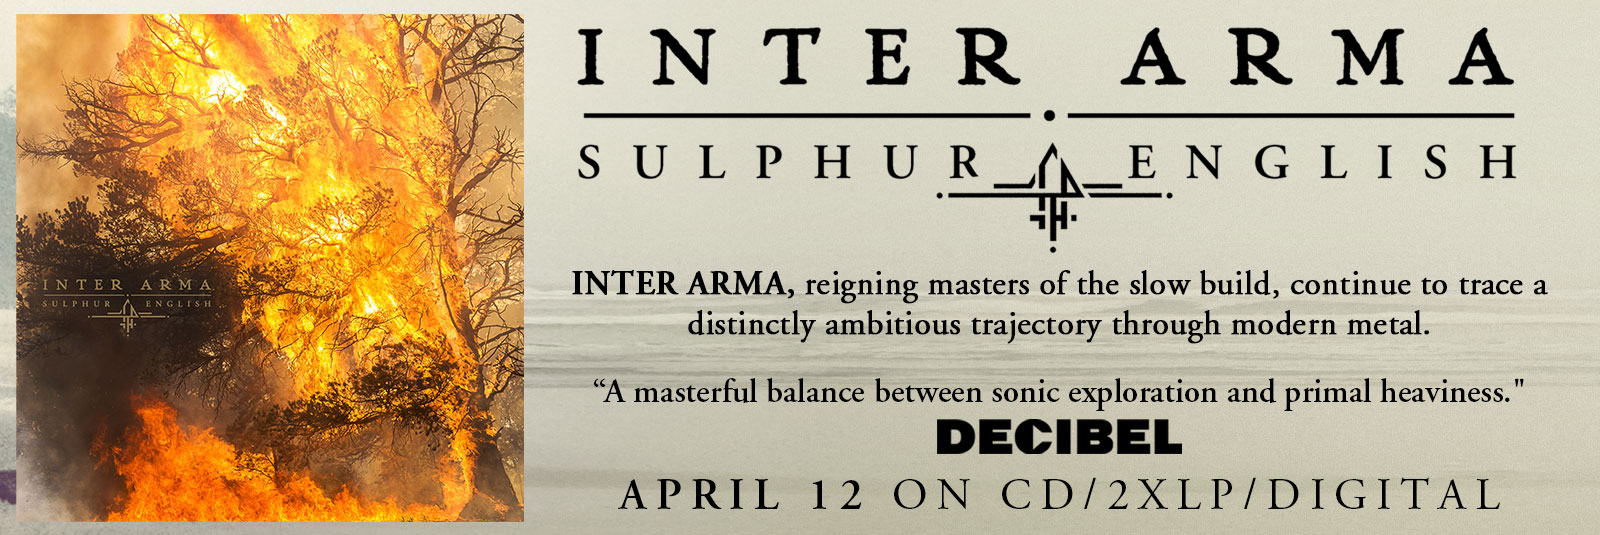 Inter-Arma-Sulphur-English-Doom-Metal-Relapse-April-12